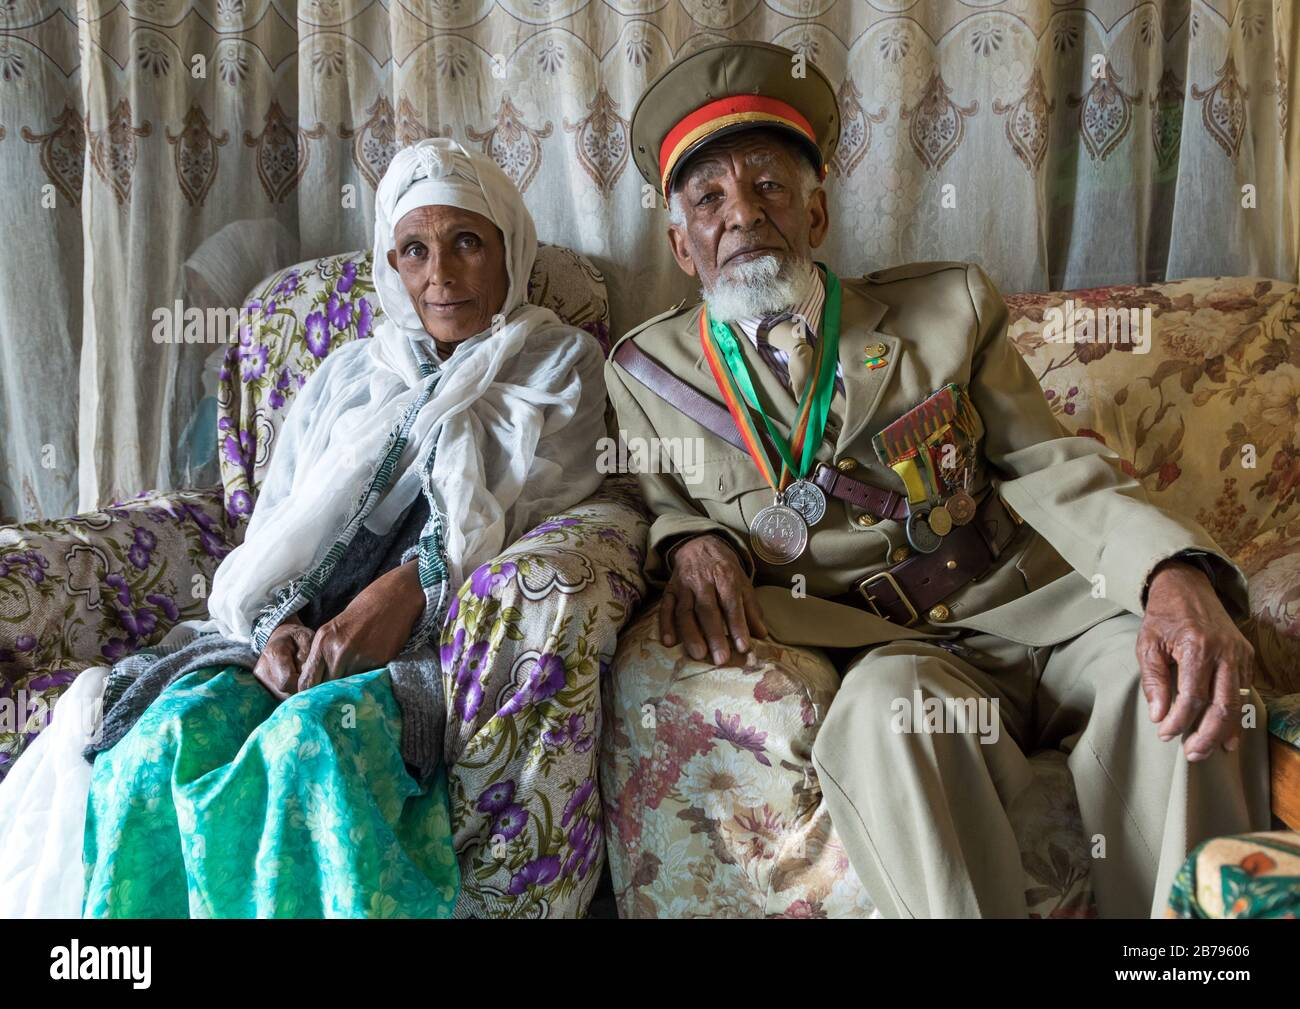 Veteran from the italo-ethiopian war in army uniform with his wife, Addis Ababa Region, Addis Ababa, Ethiopia Stock Photo